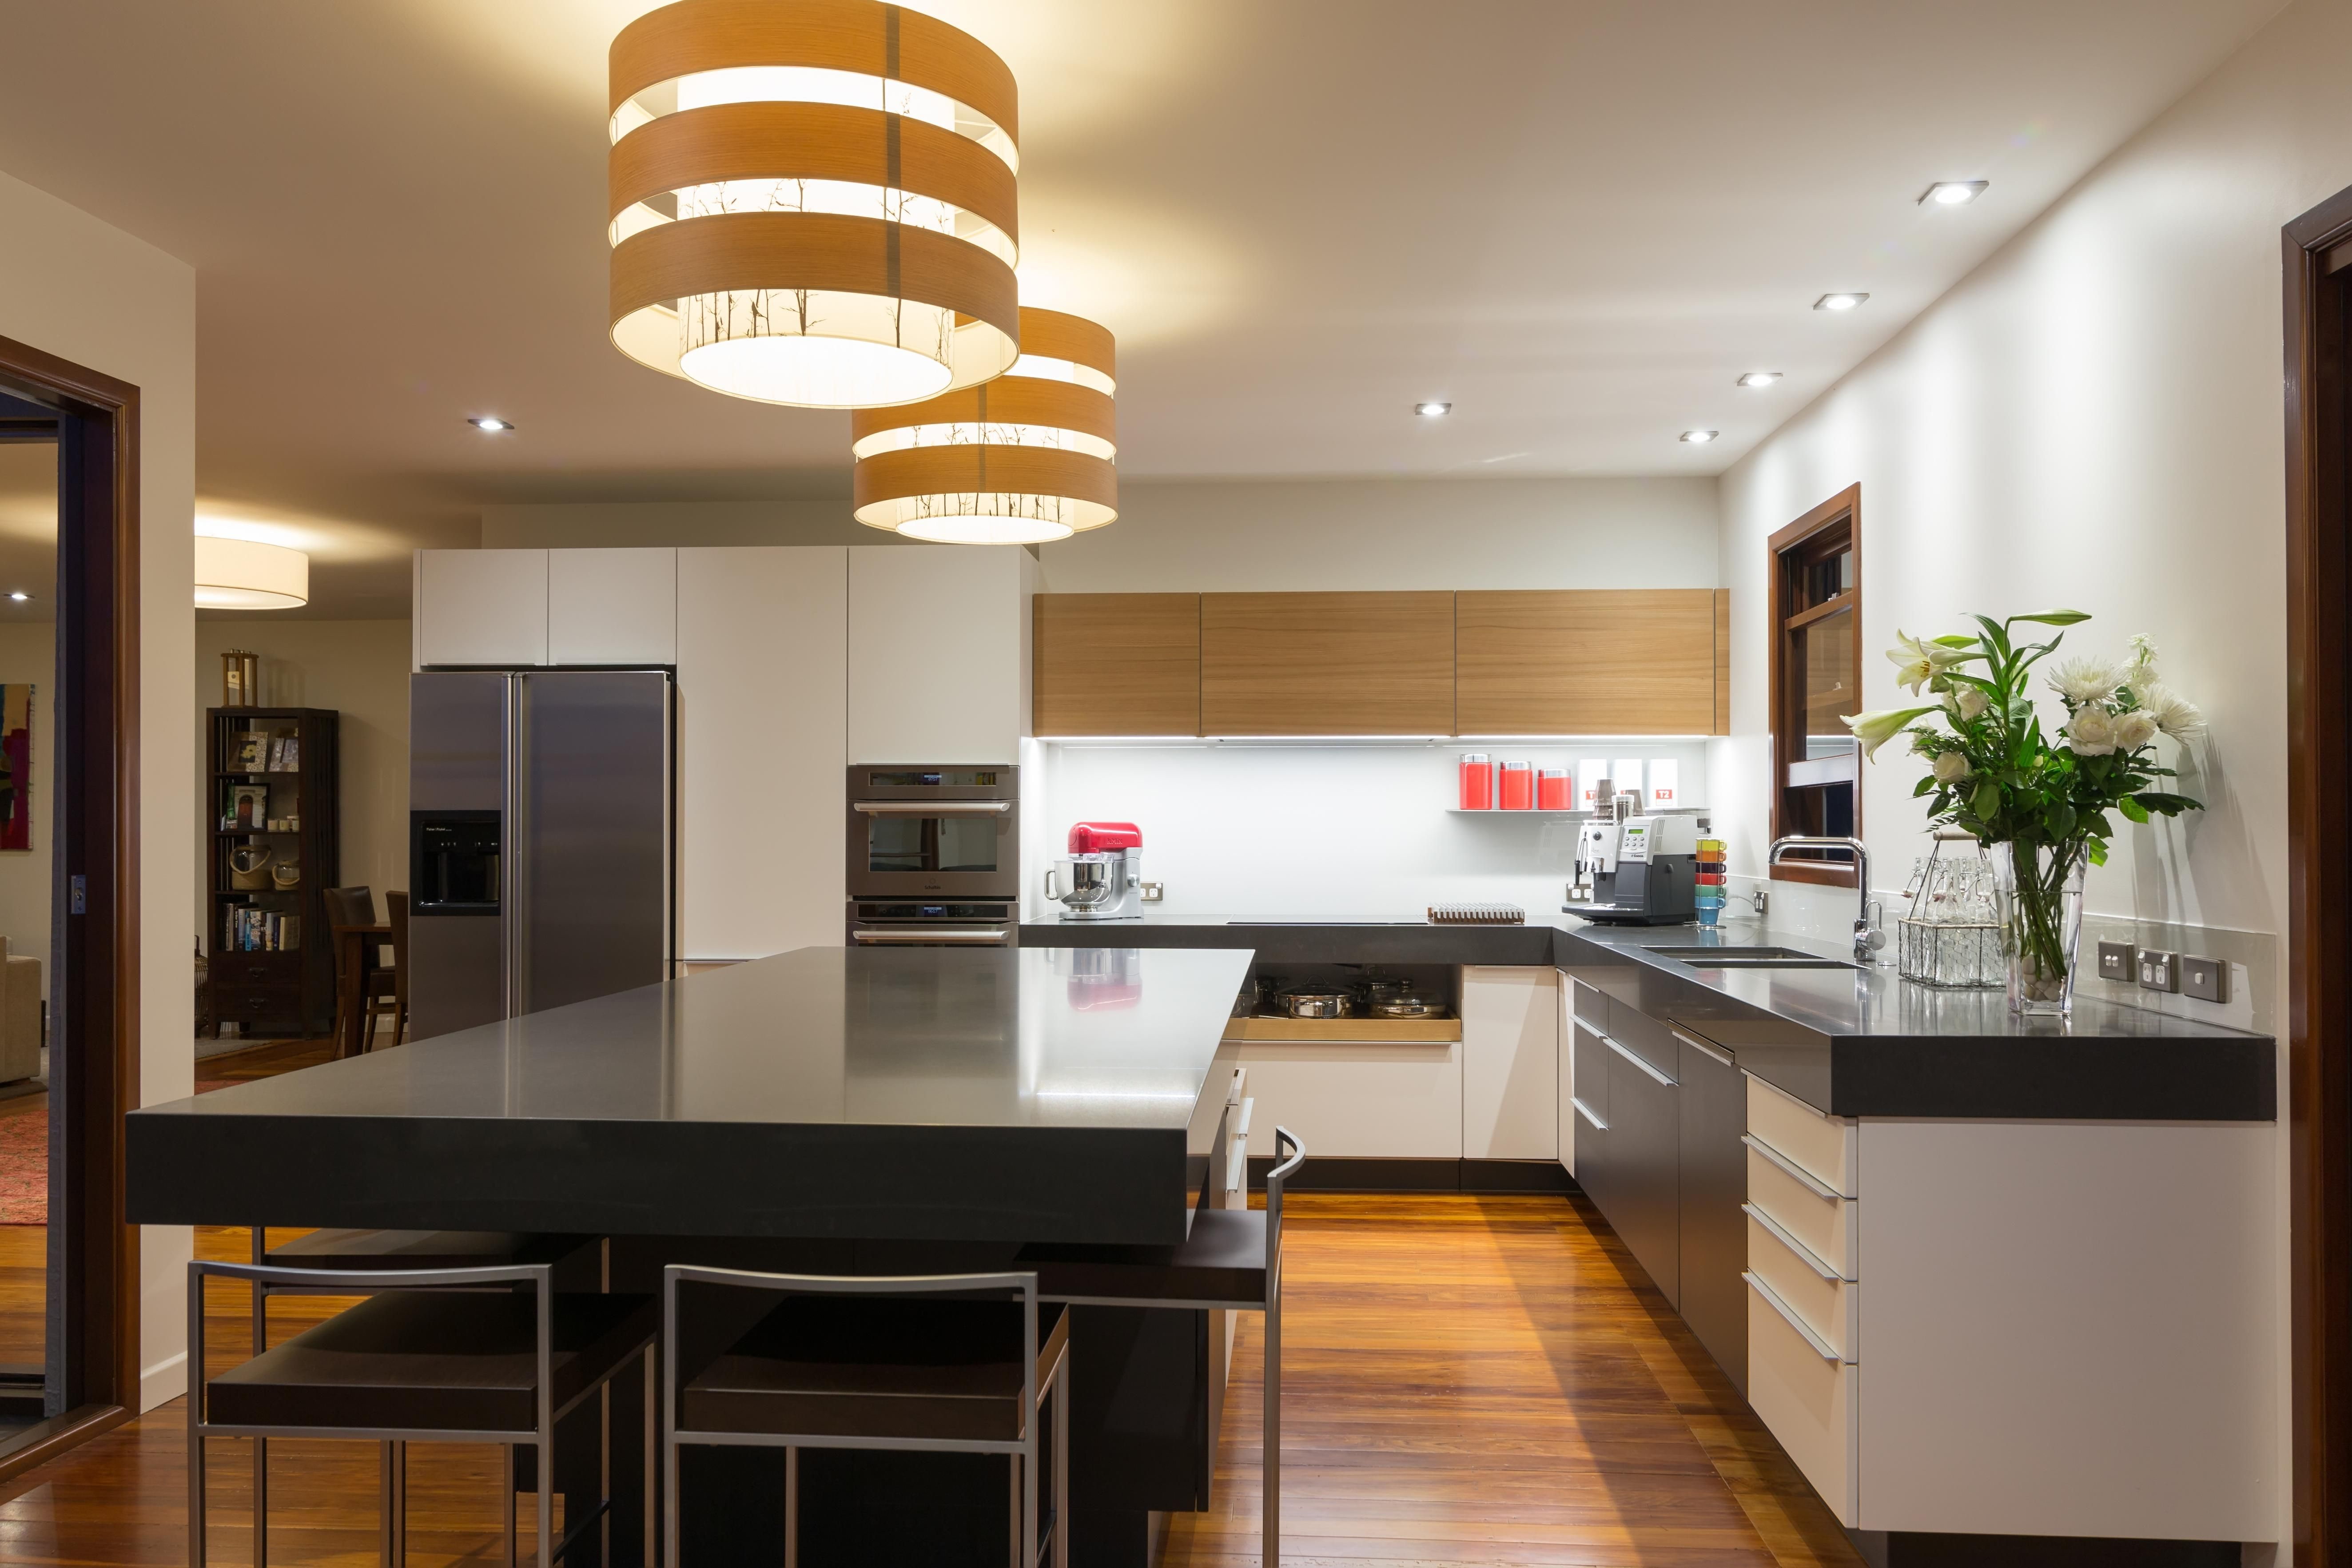 Poggenpohl Auckland NZ, a Business profile at myTrends. | Kitchens ...